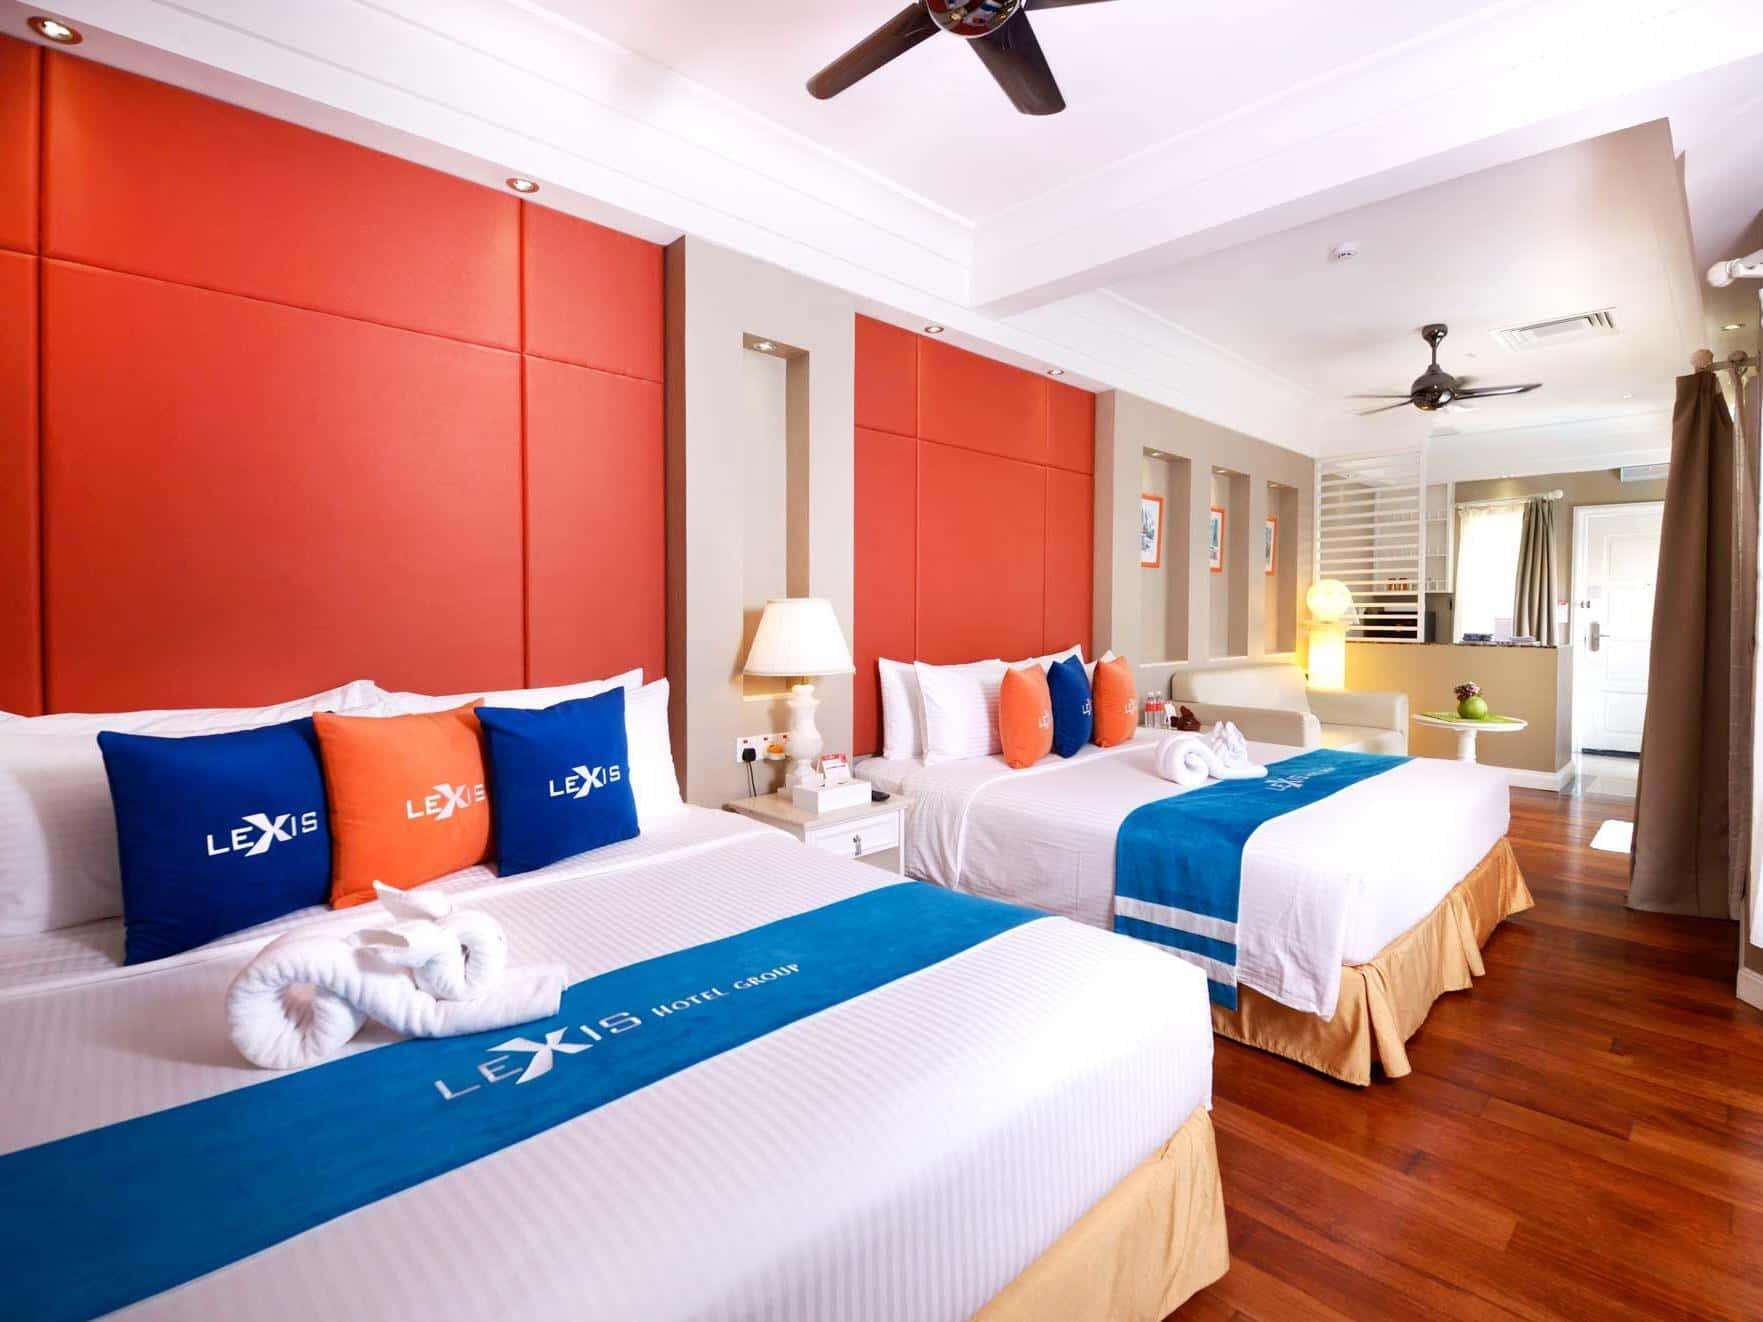 Deluxe Suite at Grand Lexis Port Dickson